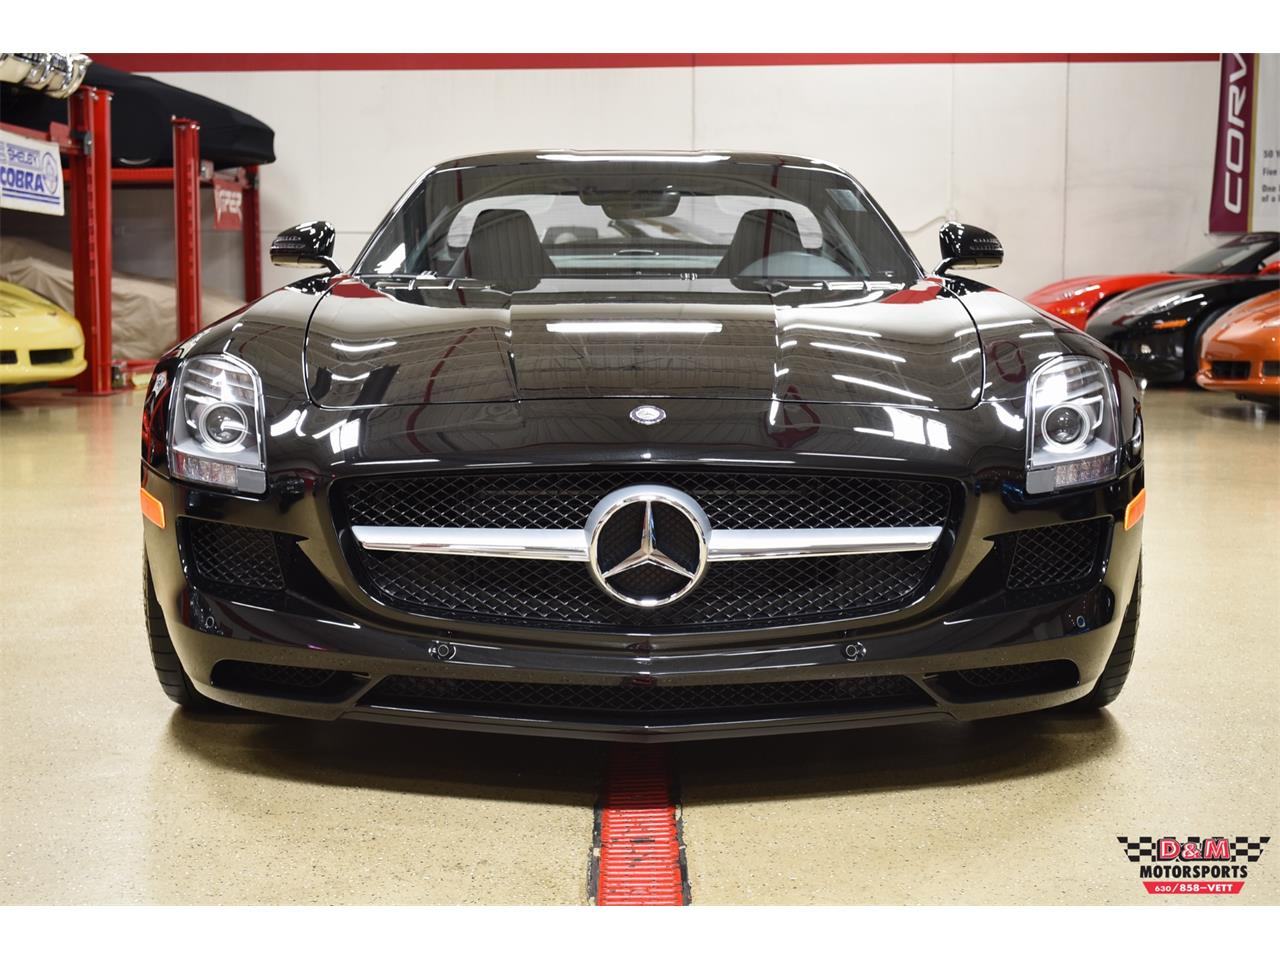 Large Picture of '12 SLS AMG located in Illinois - $199,995.00 Offered by D & M Motorsports - PXCB